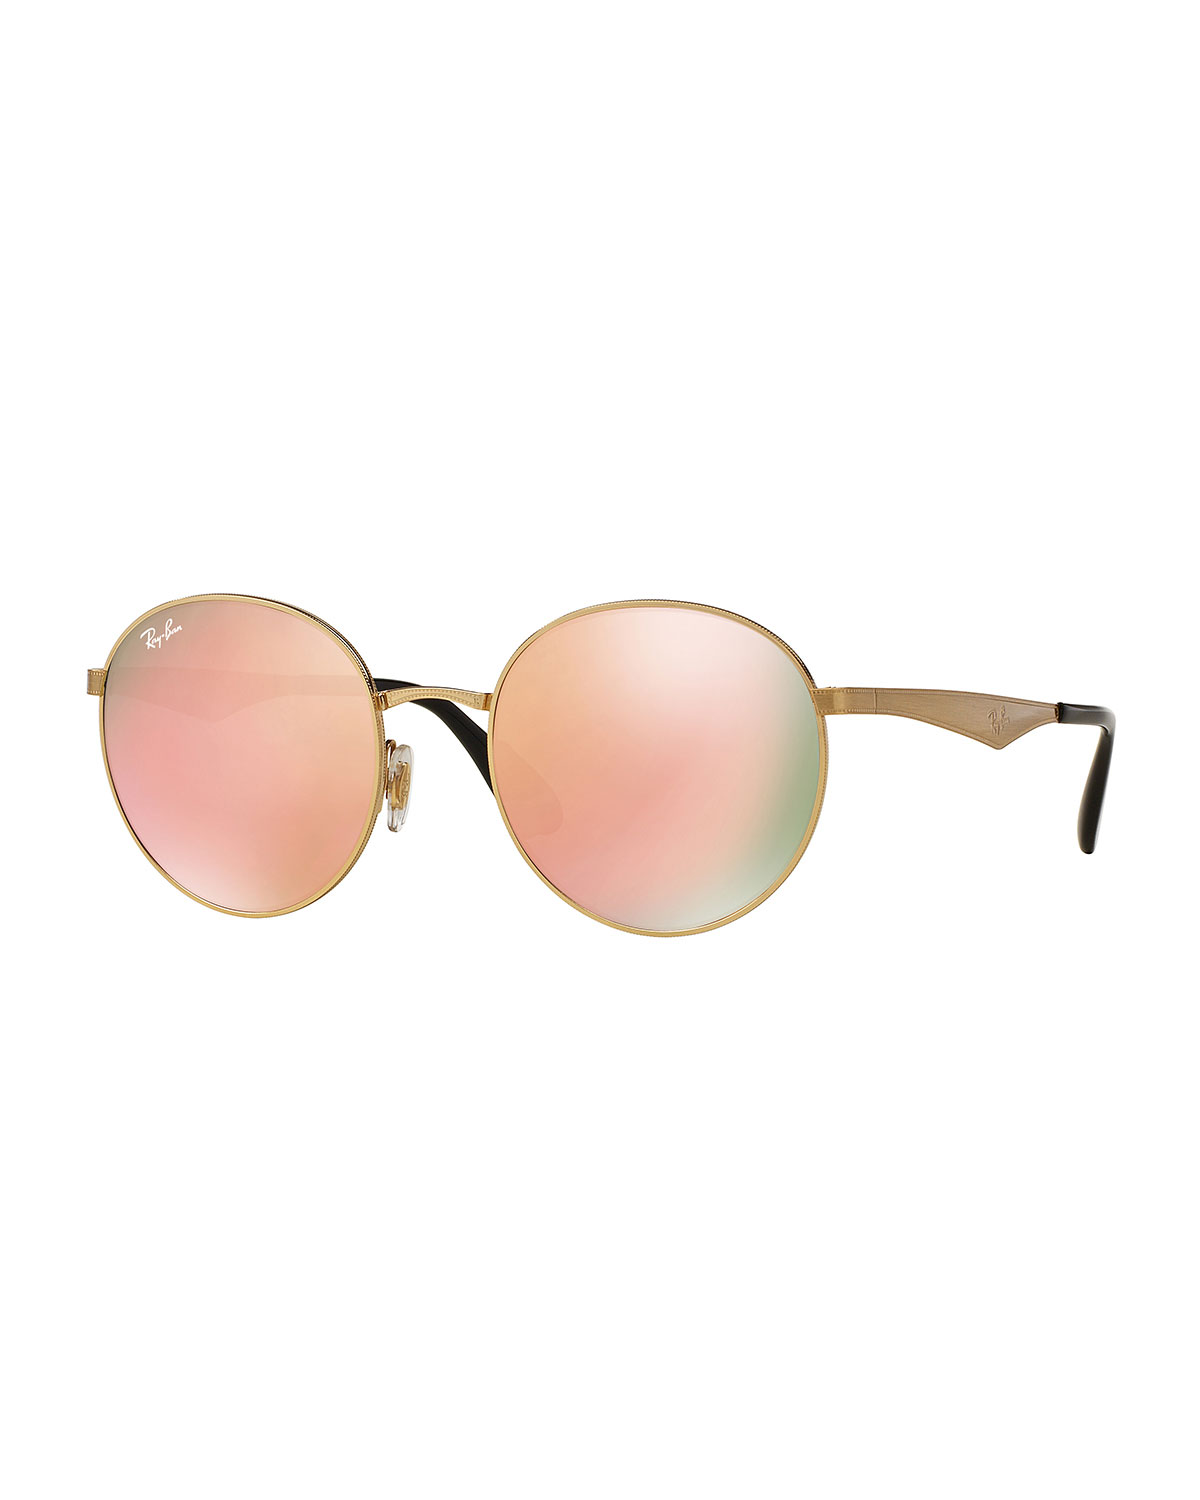 Ray-Ban Round Mirrored Sunglasses, Golden/Pink, Gold/Pink